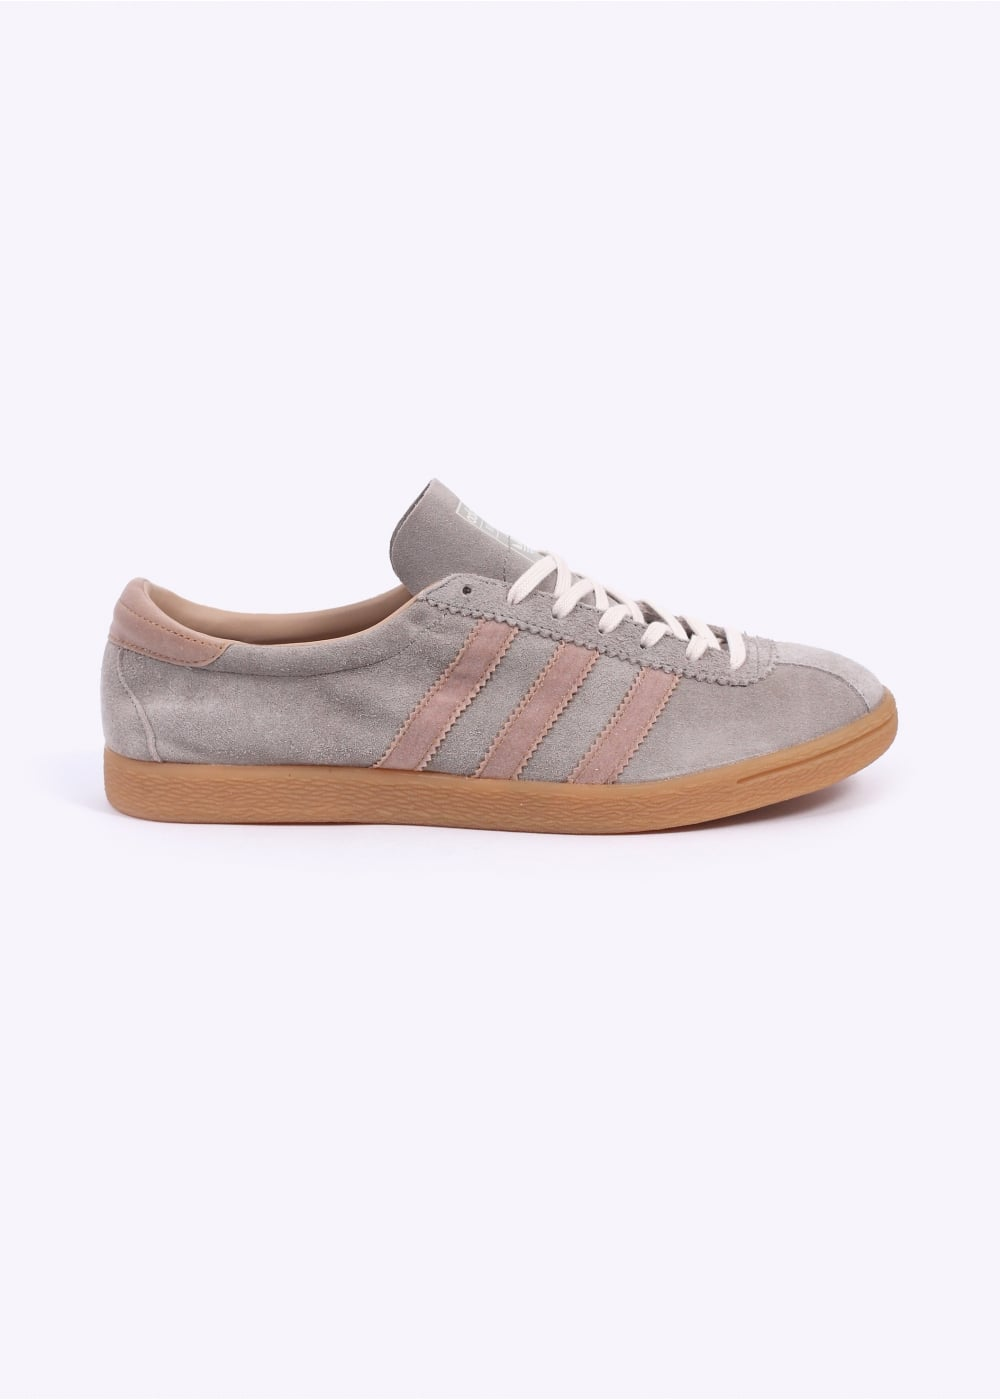 bc714021e36a02 adidas Originals Tobacco Rivea - Chrome